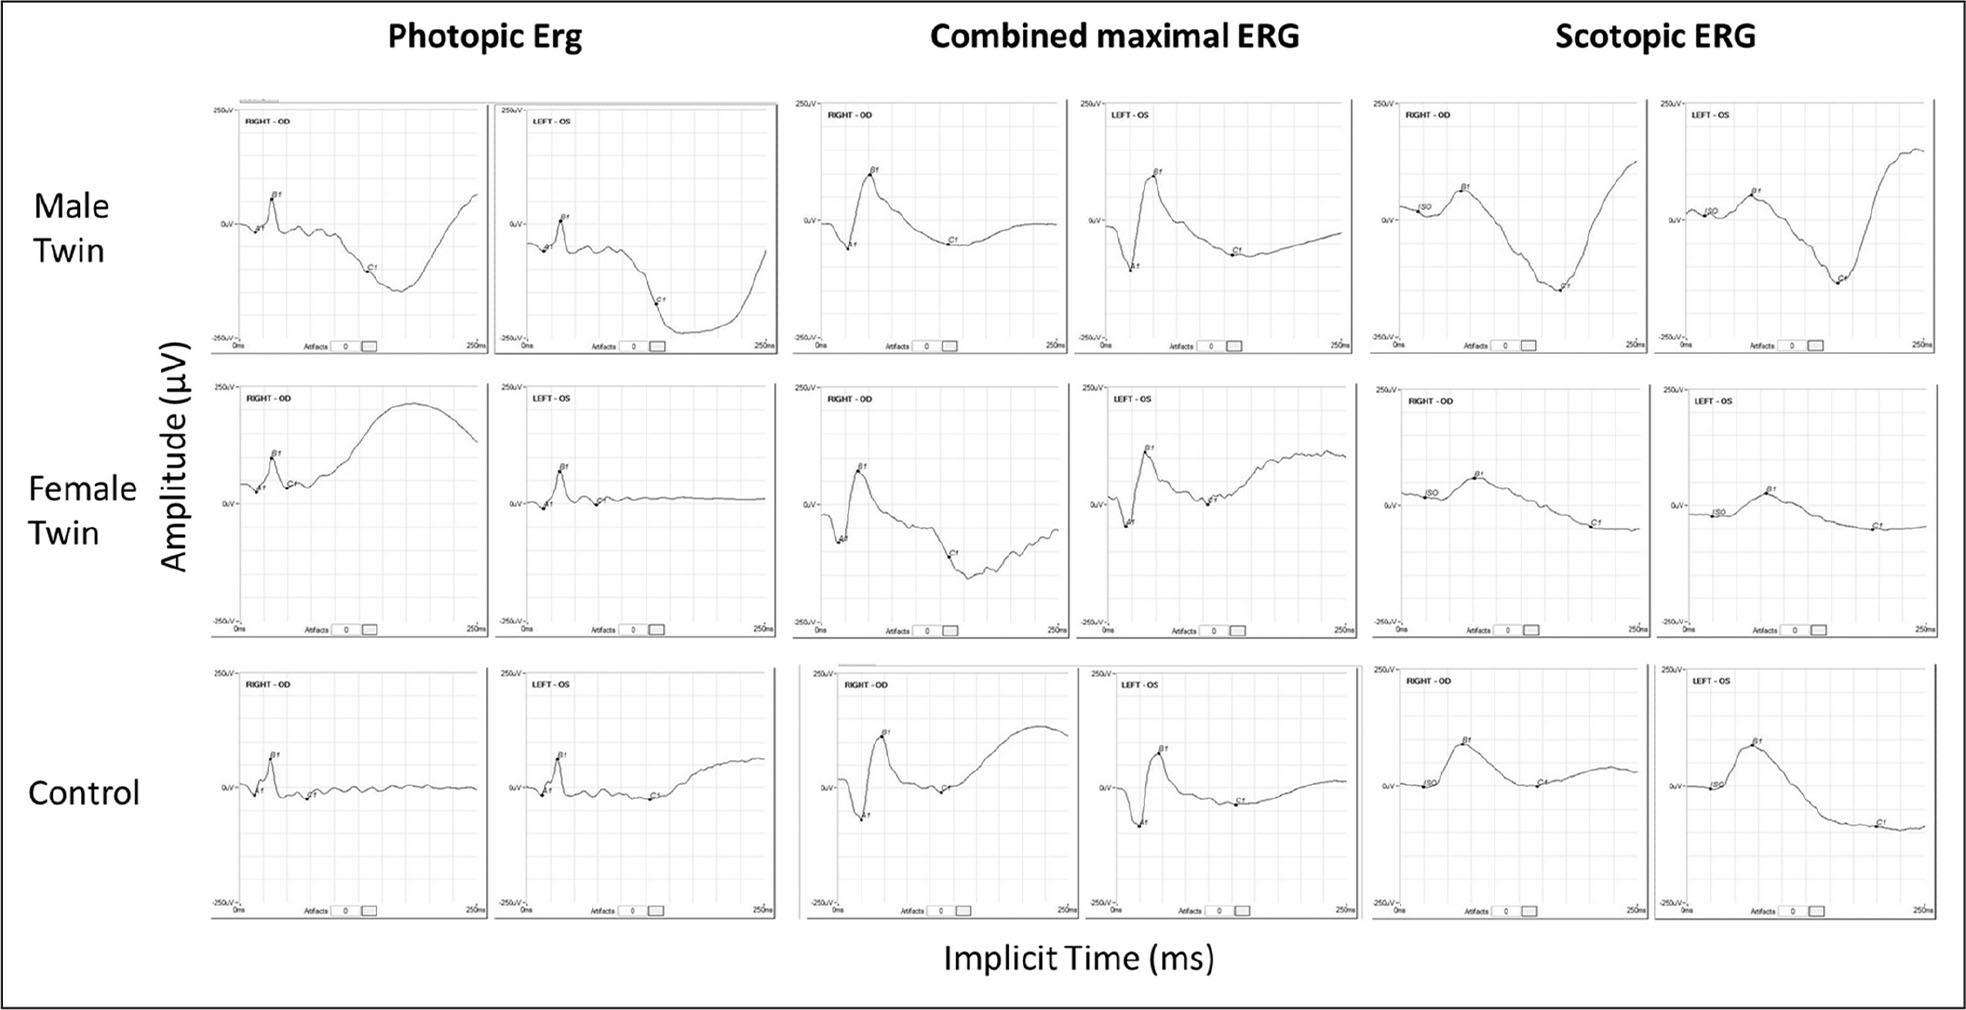 Electroretinography (ERG) results from the affected twins showing a mild amplitude reduction for scotopic response, whereas photopic and combined maximal responses are normal. Electroretinography trace from a control patient is shown for comparison.